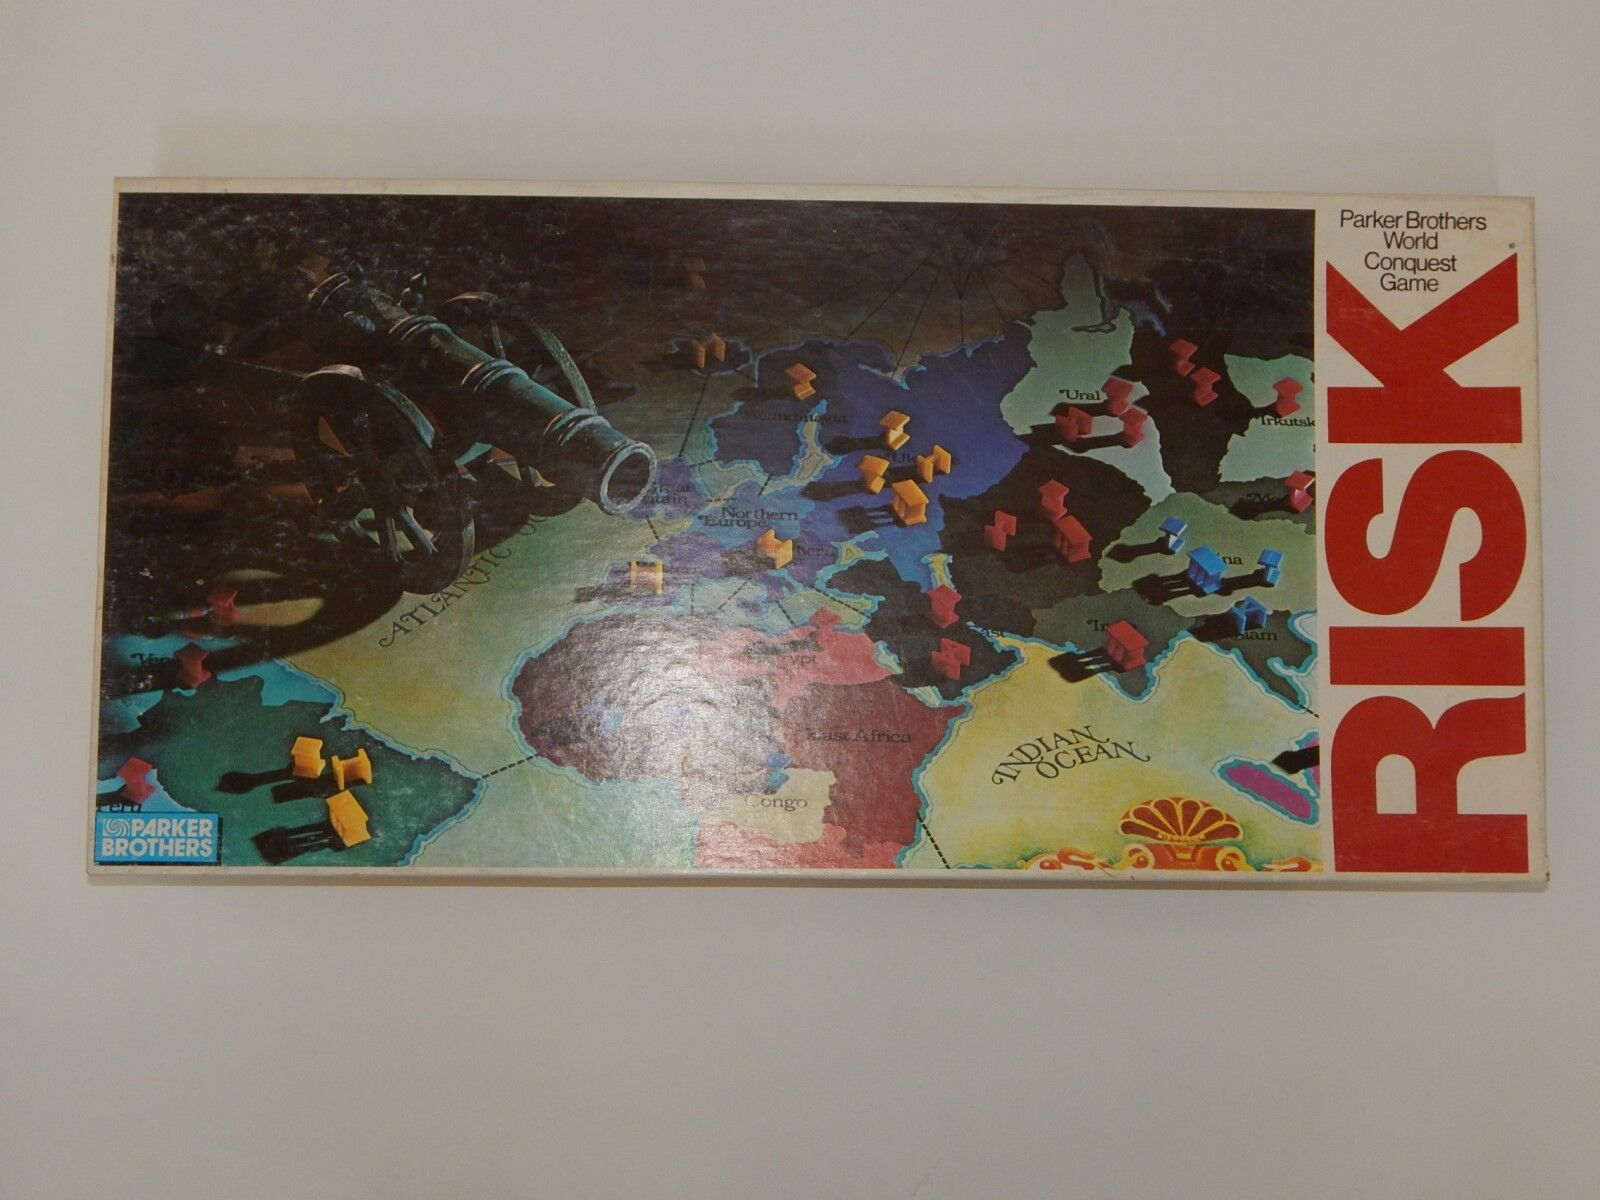 VINTAGE 1980 RISK WORLD GAME CONQUEST BOARD GAME WORLD EXCELLENT SHAPE - COMPLETE R17947 757475